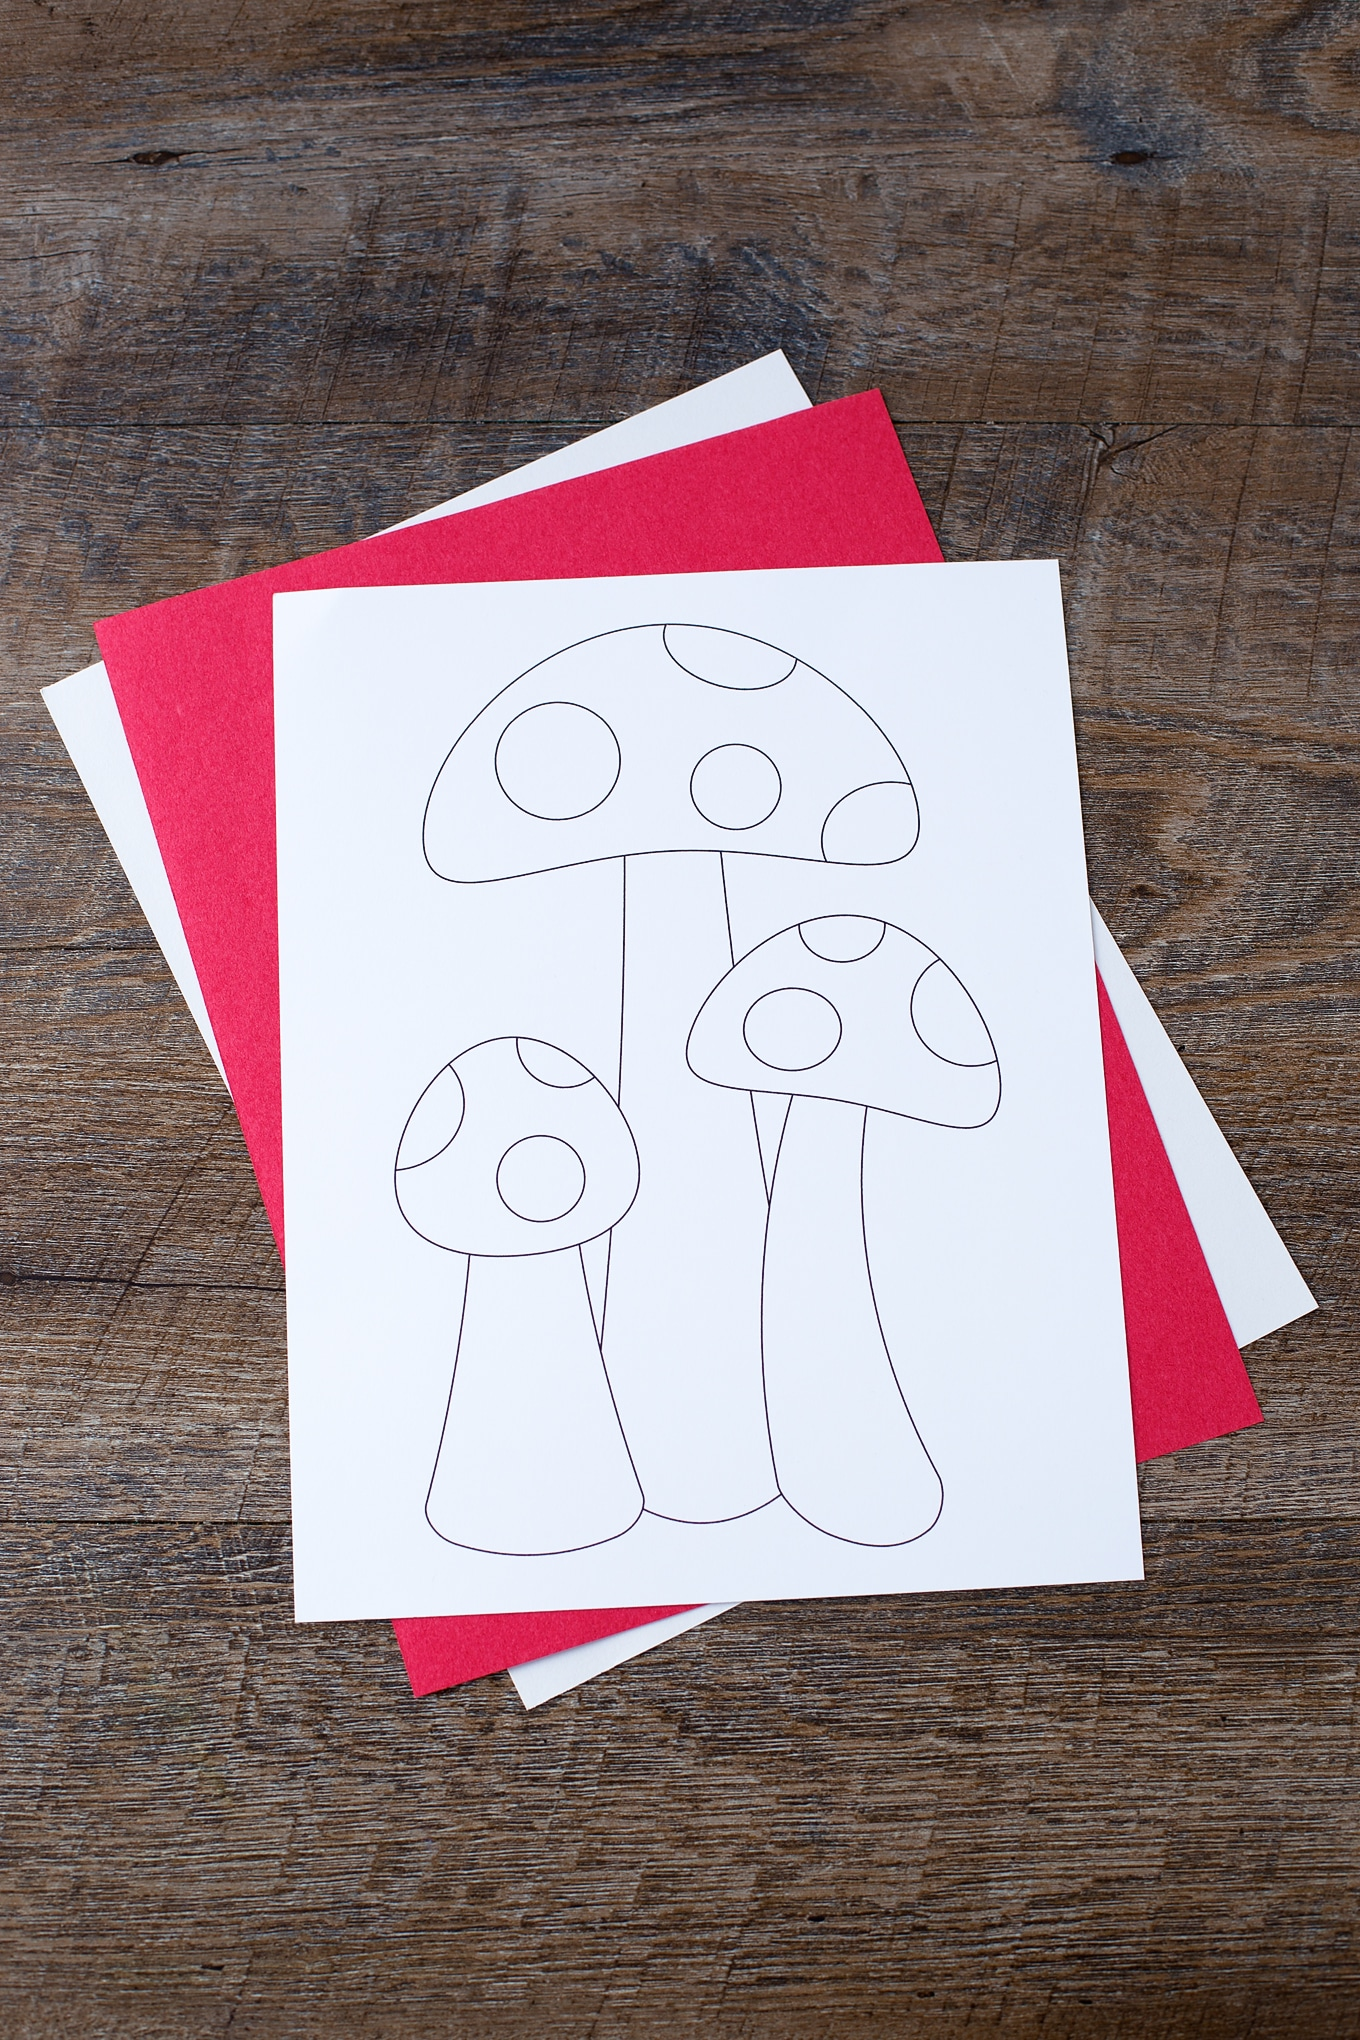 Kids will develop fine-motor skills and have fun while using our printable mushroom template to create colorful Torn Construction Paper Mosaic Mushroom Art.